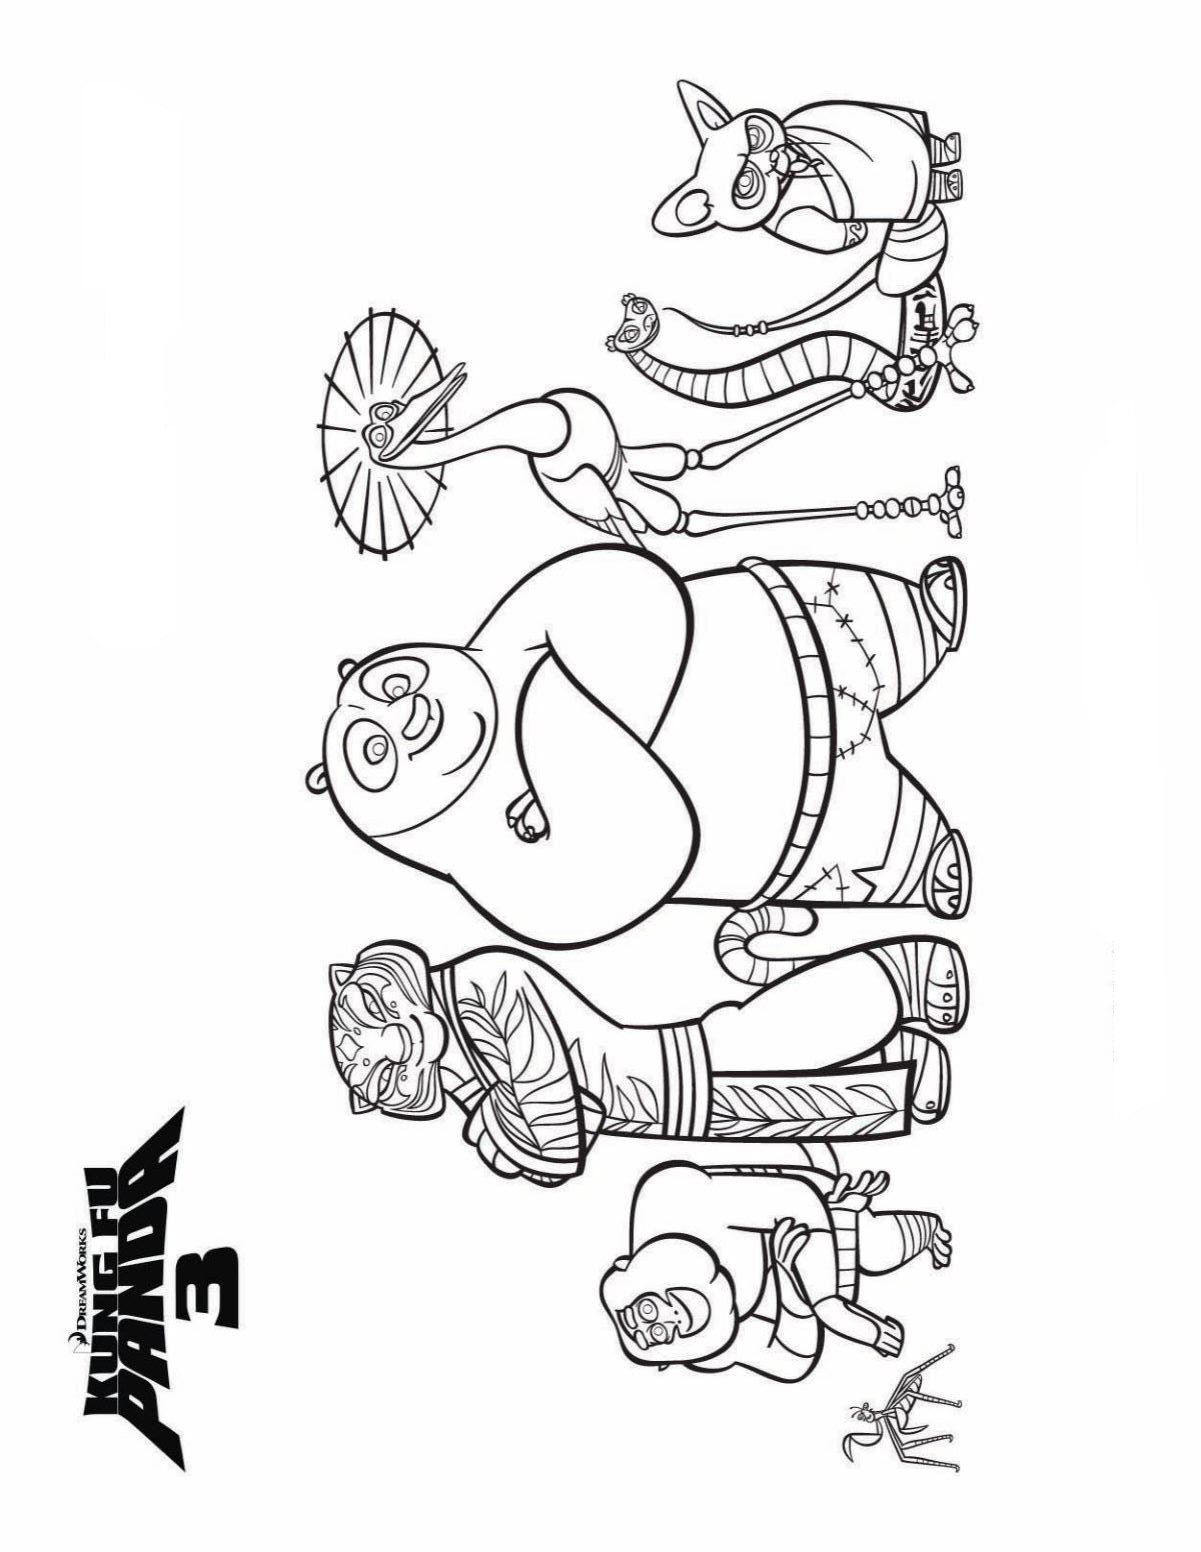 Kidsnfuncom  7 coloring pages of Kung Fu Panda 3